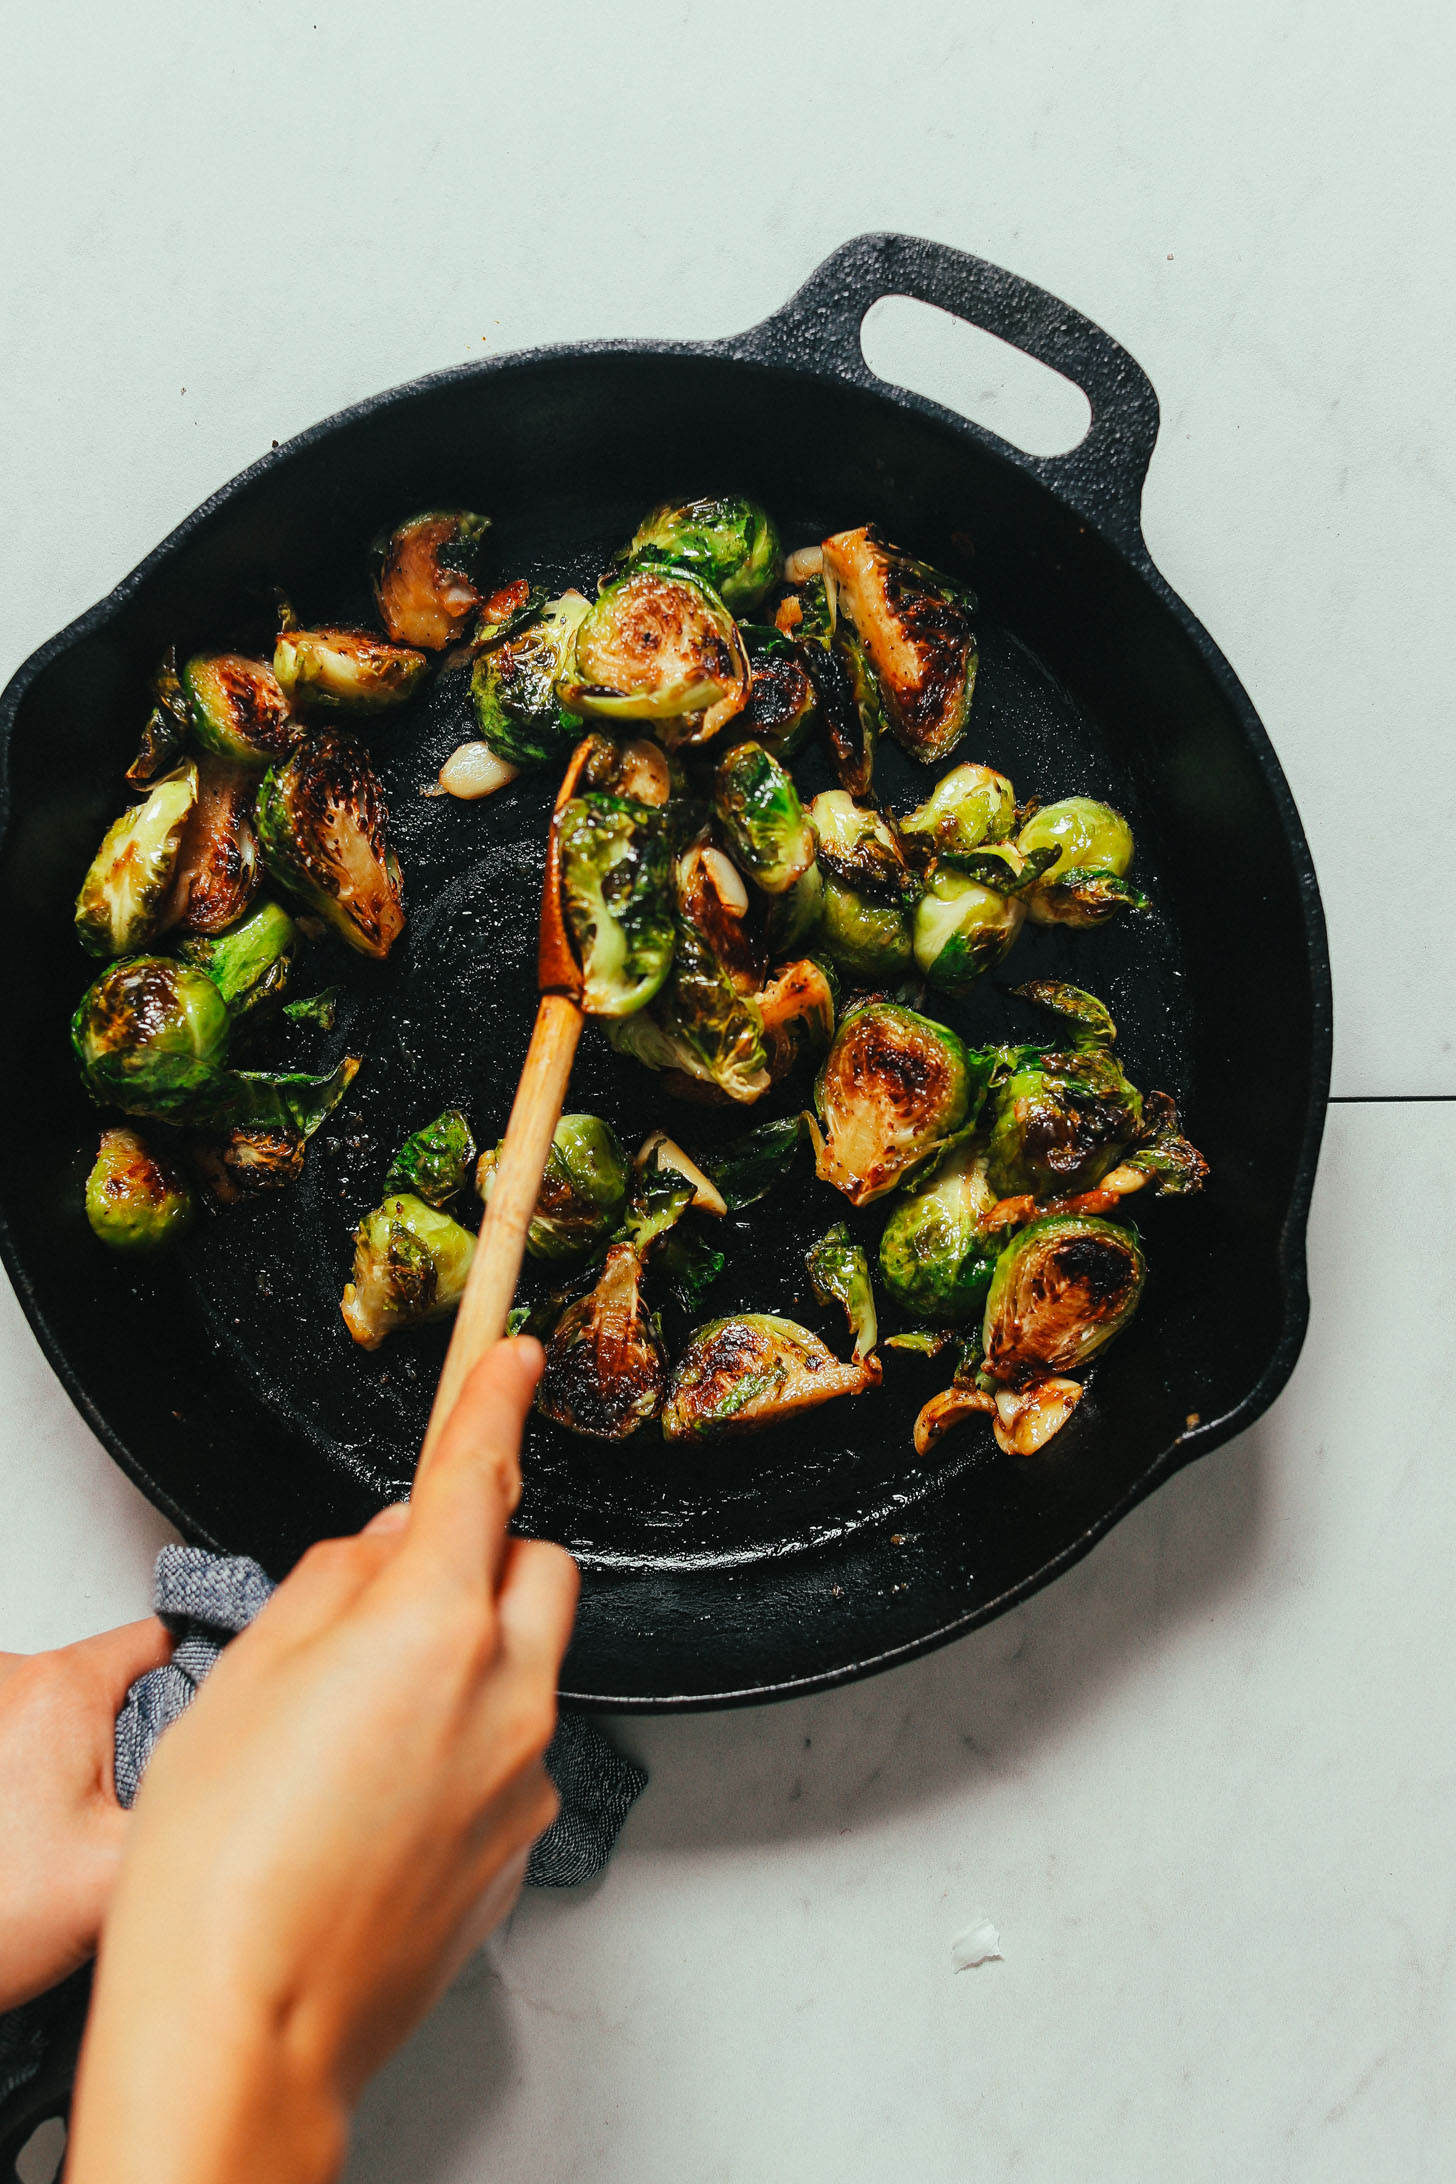 Using a wooden spoon to coat Roasted Brussels Sprouts with Miso Glaze for a delicious Thanksgiving side